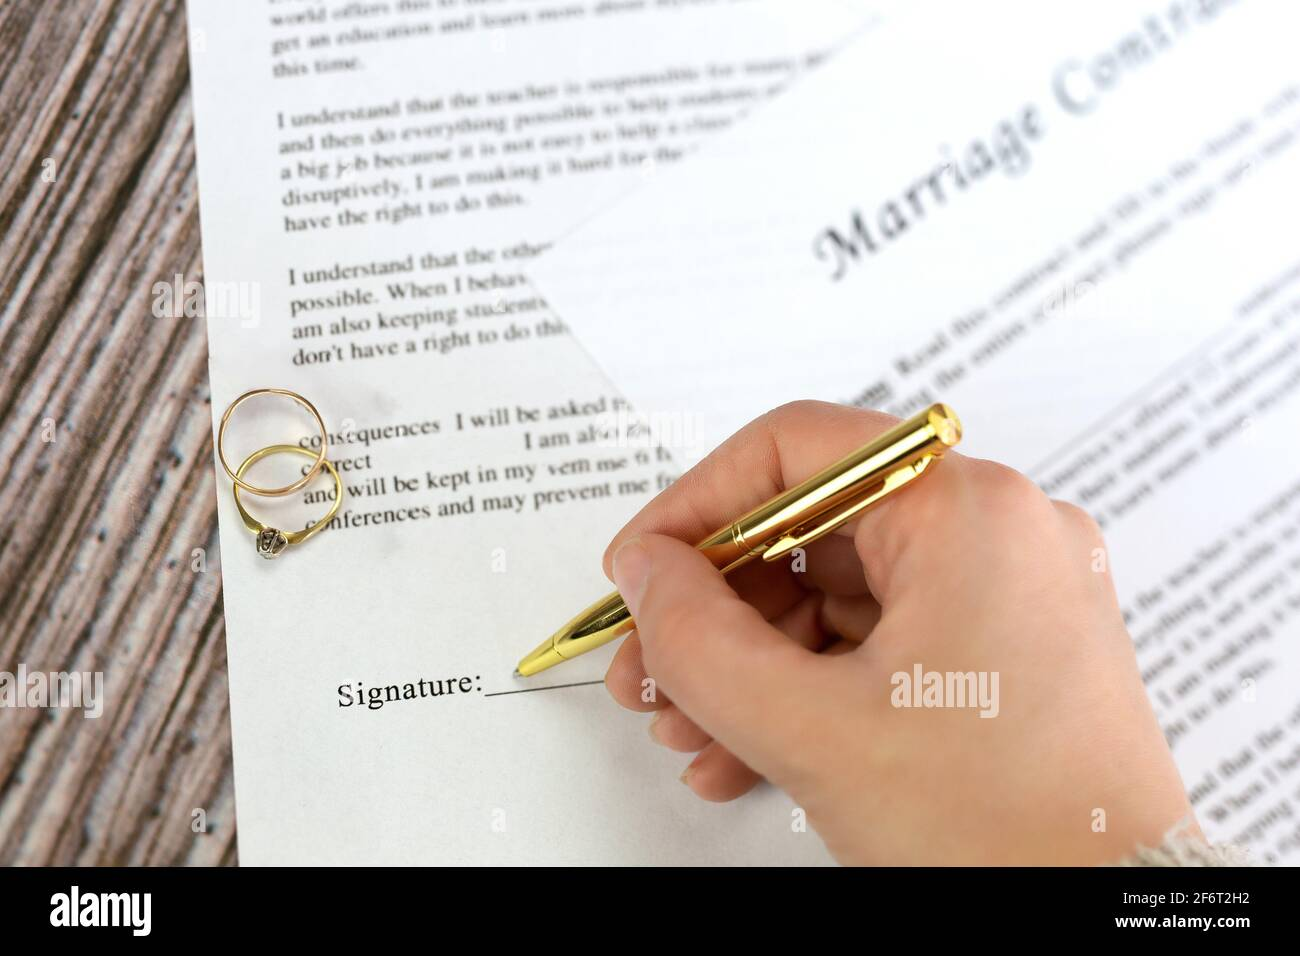 Marriage contract with two golden wedding rings and gold pen, prenuptial agreement, macro close up, sign with signanture,document,agreement concept Stock Photo